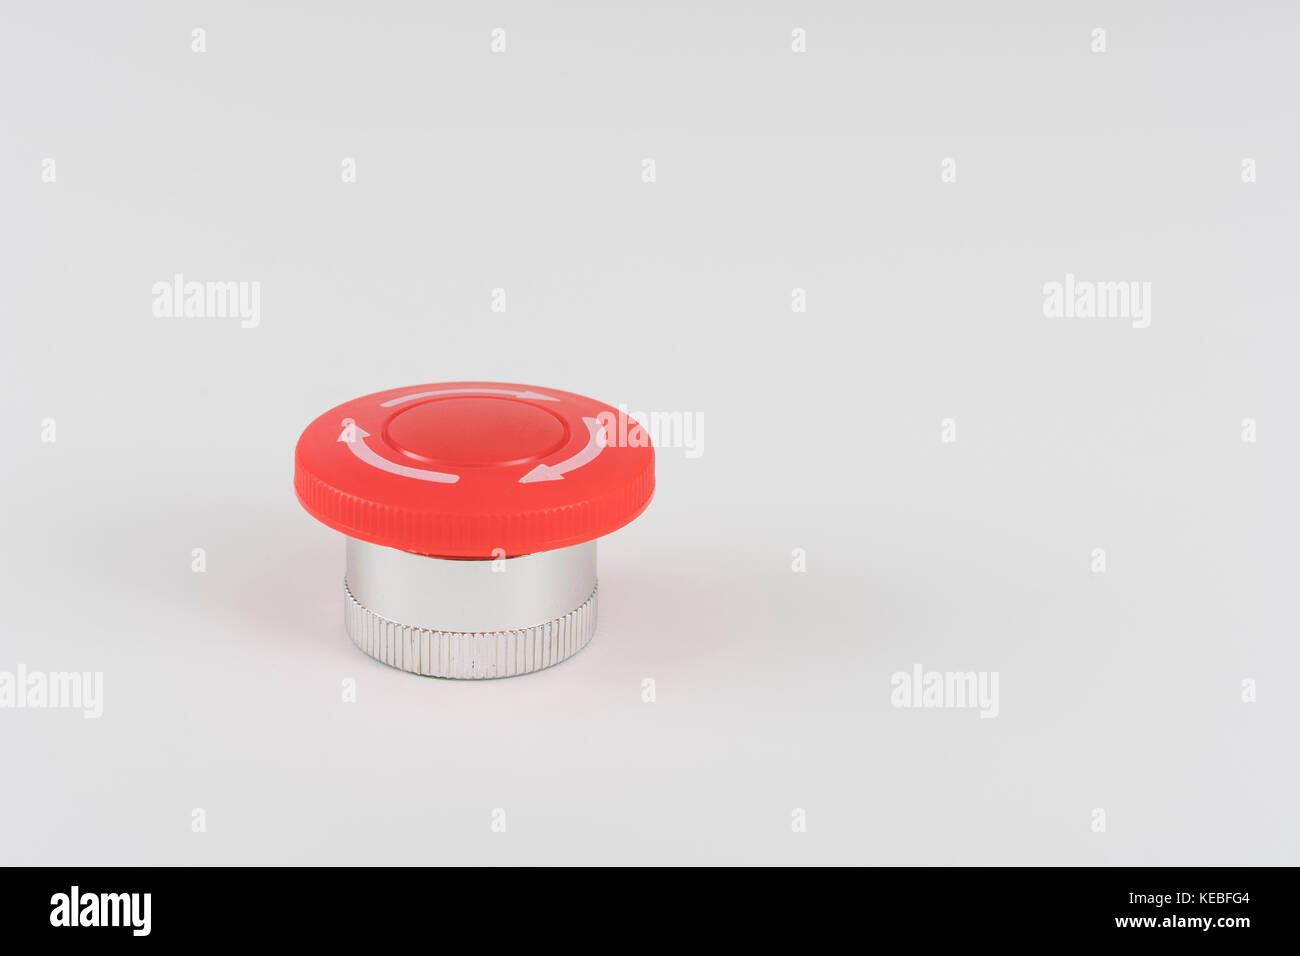 Big red button on light background - metaphor for 'Finger on the Button', possible finger on nuclear button, - Stock Image